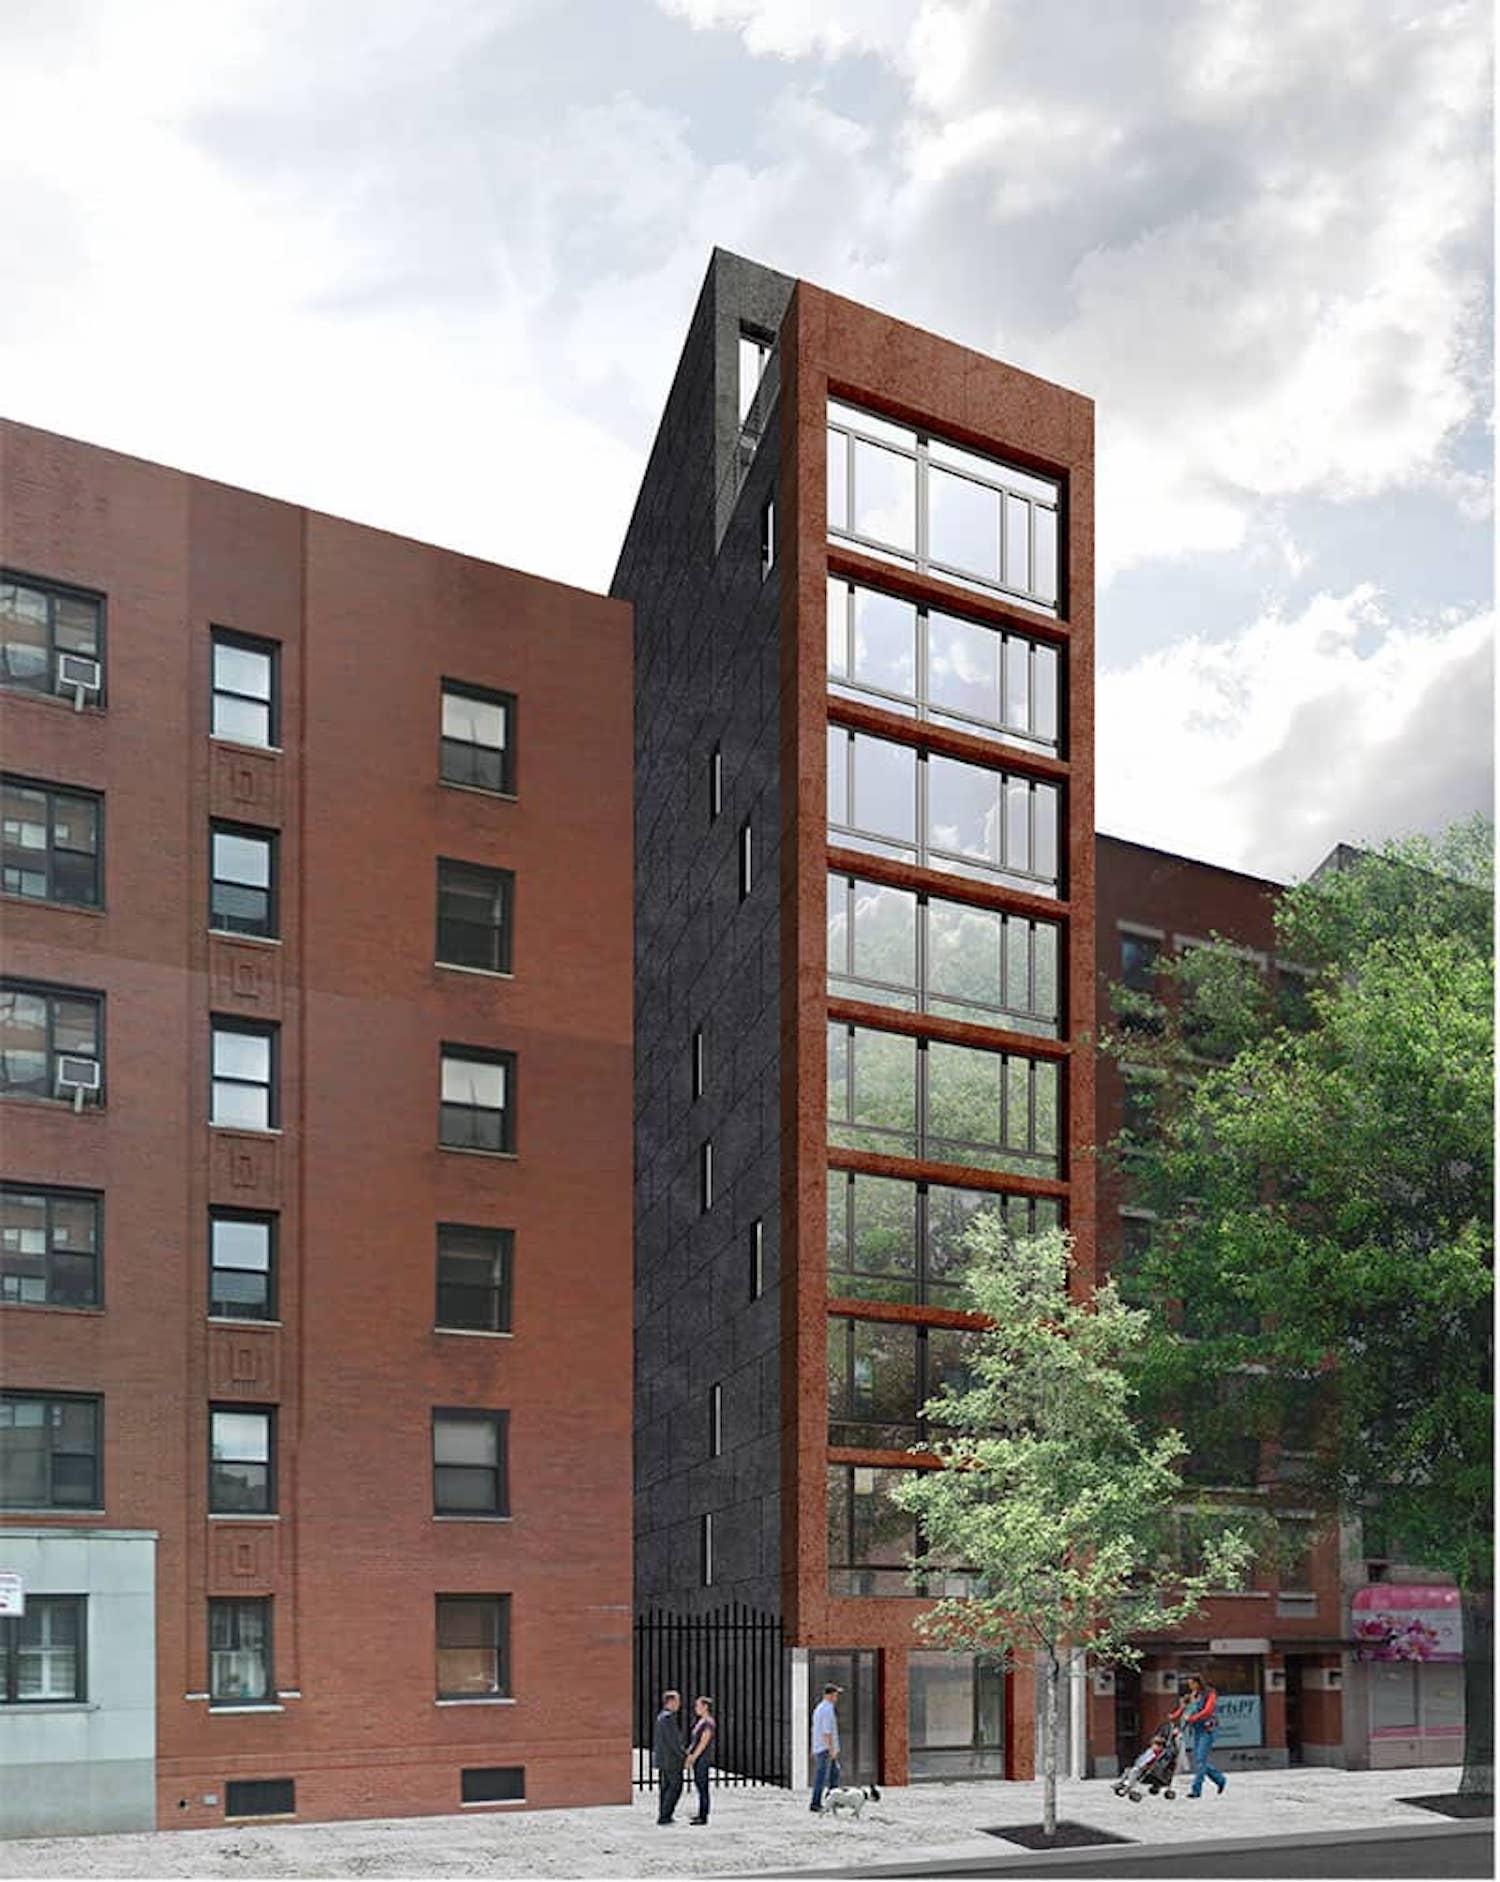 1402 York Avenue on the Upper East Side. All images courtesy of NYC Housing Connect